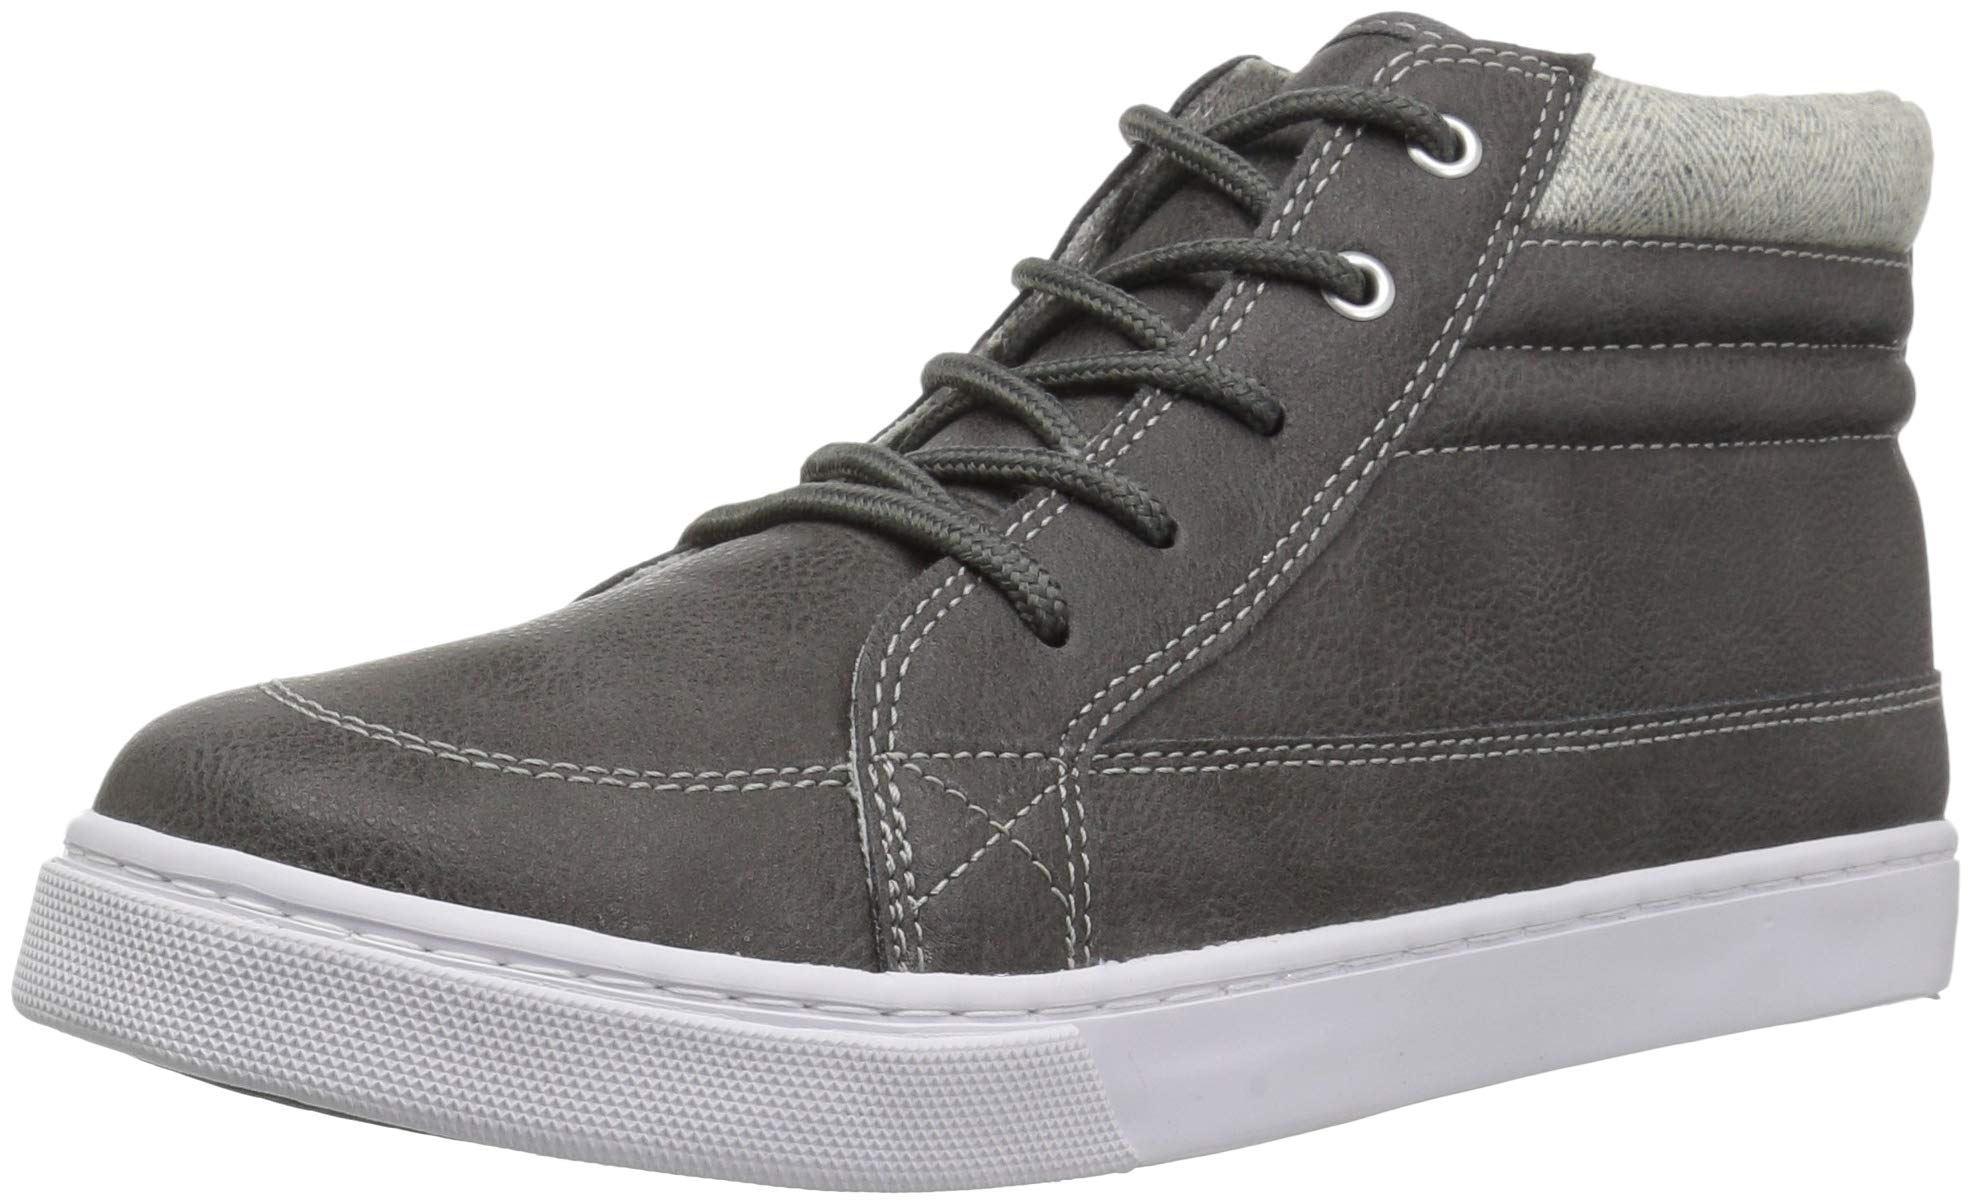 The Children's Place Boys' High Top Sneaker, Nordic Gray, Youth 3 Child US Little Kid